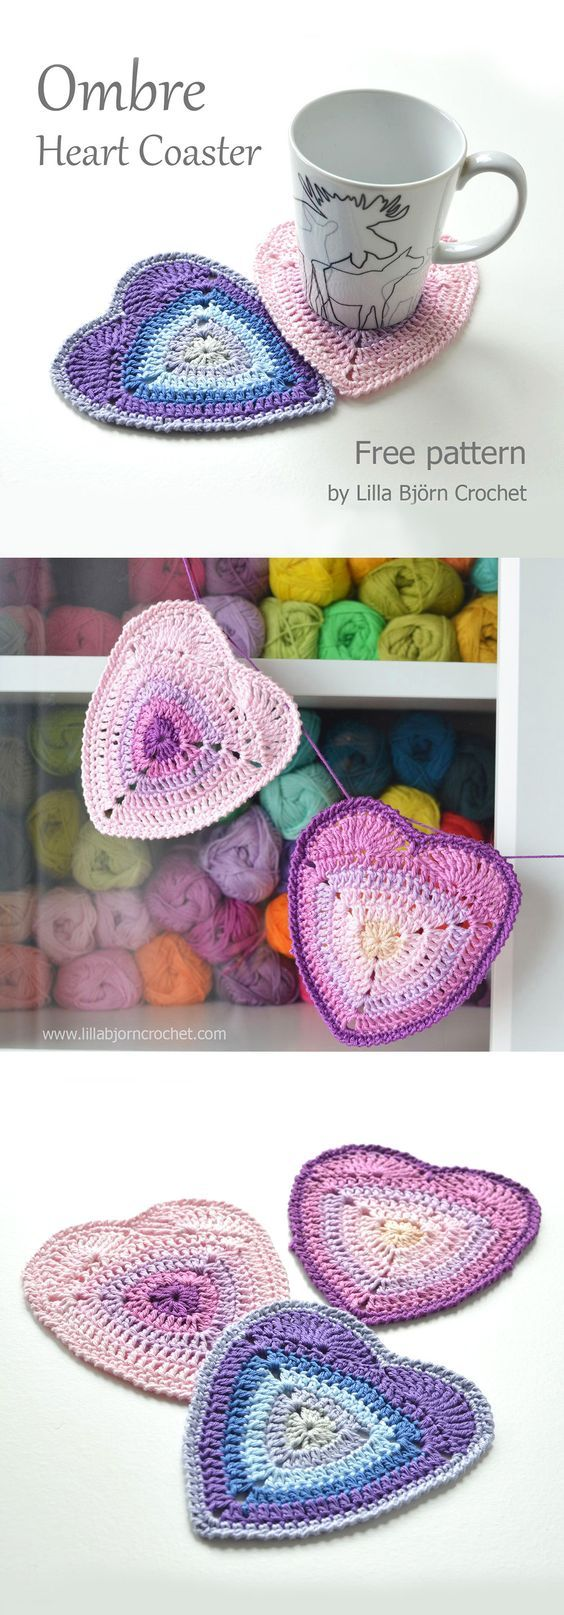 Easy and free crochet pattern of a cute heart coaster with ombre easy and free crochet pattern of a cute heart coaster with ombre effect aimed to bankloansurffo Images